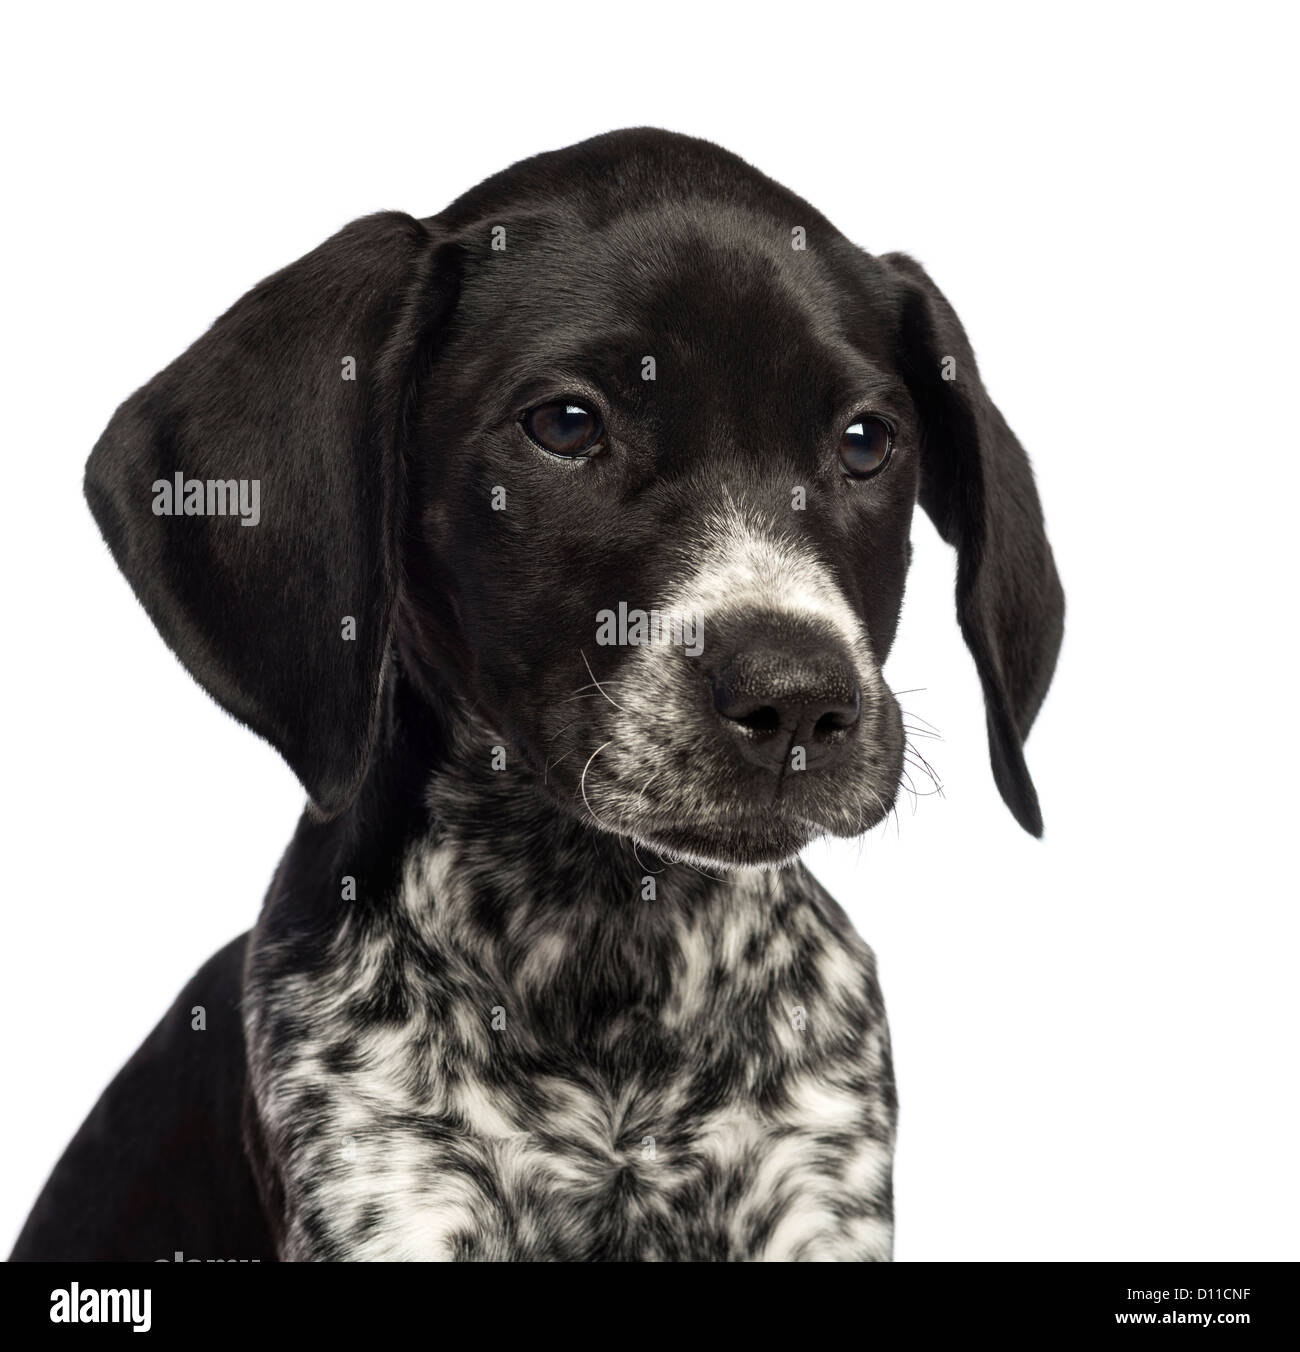 German Shorthaired Pointer Black Stock Photos & German Shorthaired ...